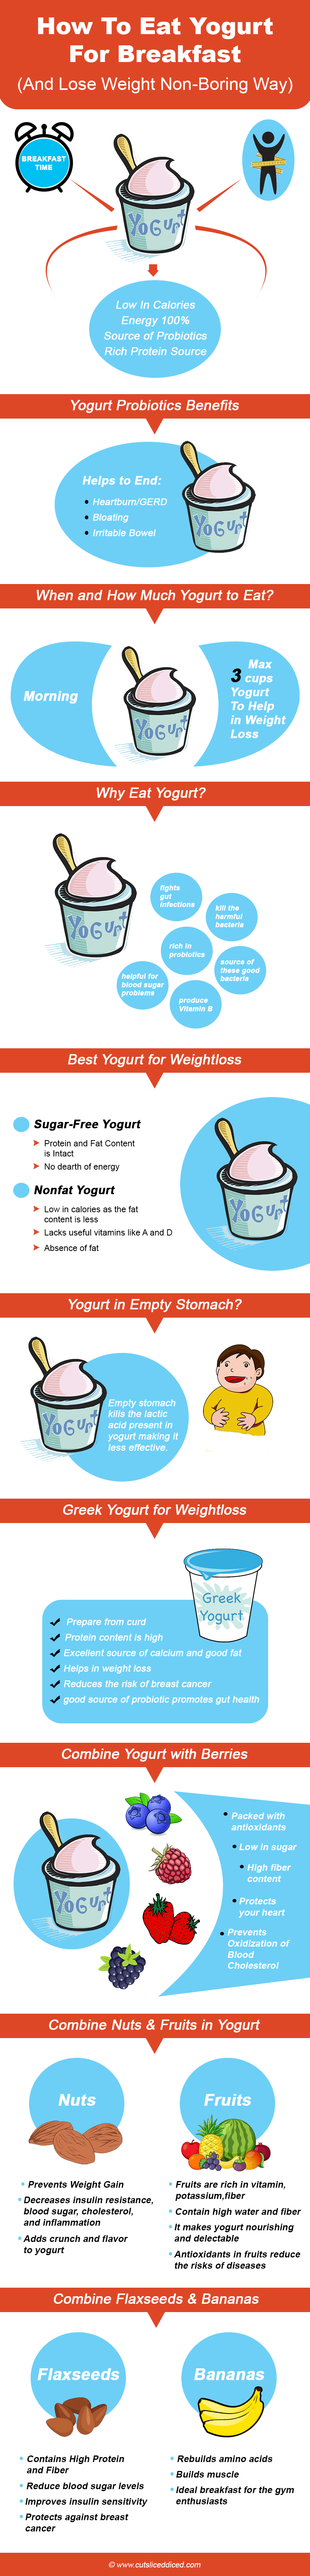 How To Eat Yogurt For Breakfast